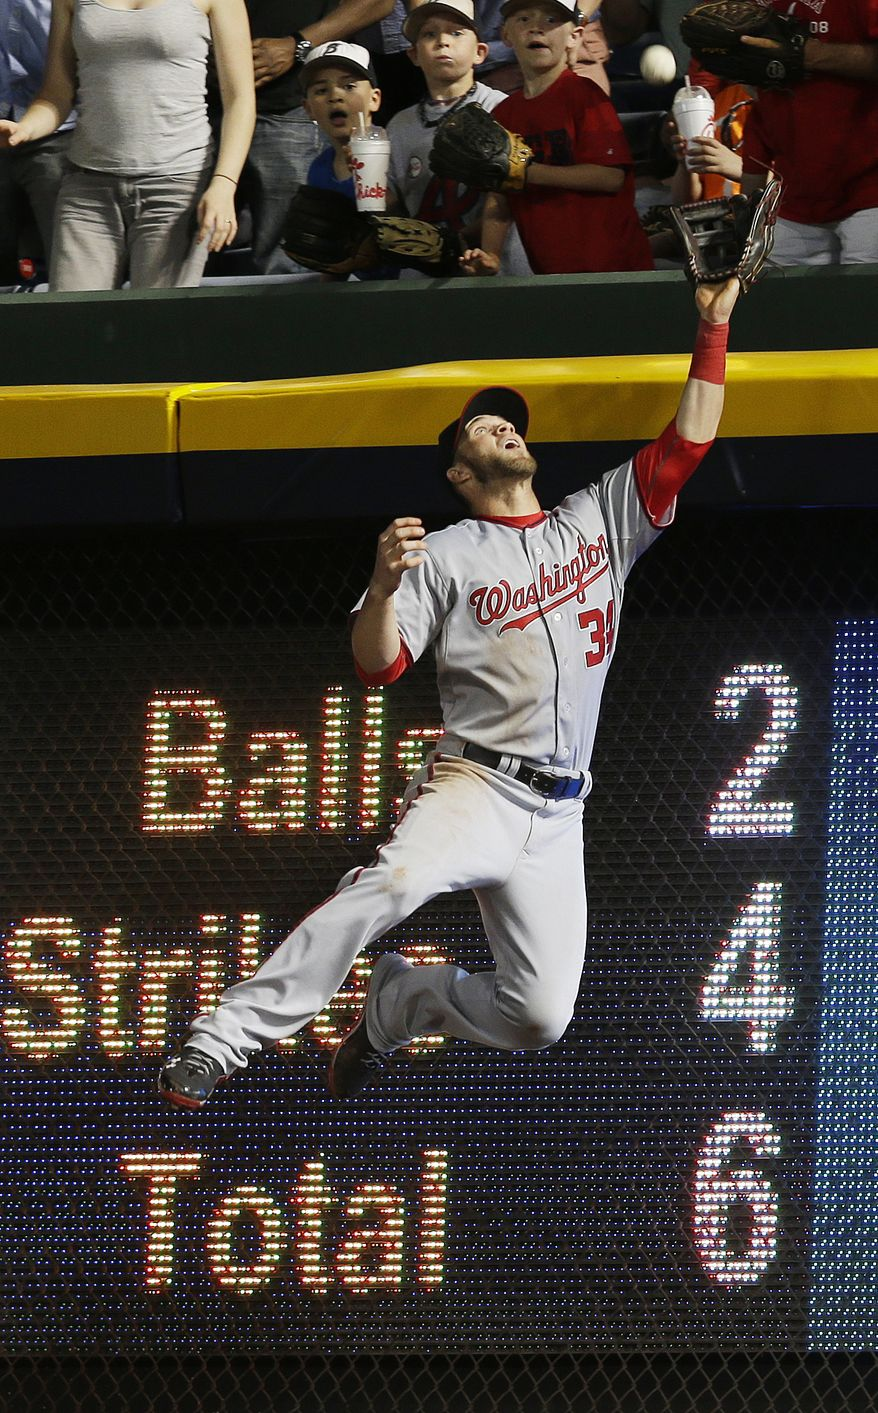 Bryce Harper leaps to make what could've been a home run-robbing catch on a ball hit by Braves pitcher Tim Hudson on Tuesday night. Harper collided with the scoreboard, though, and the ball popped out of his glove and over the wall in the Nationals' loss. (Associated Press photo)